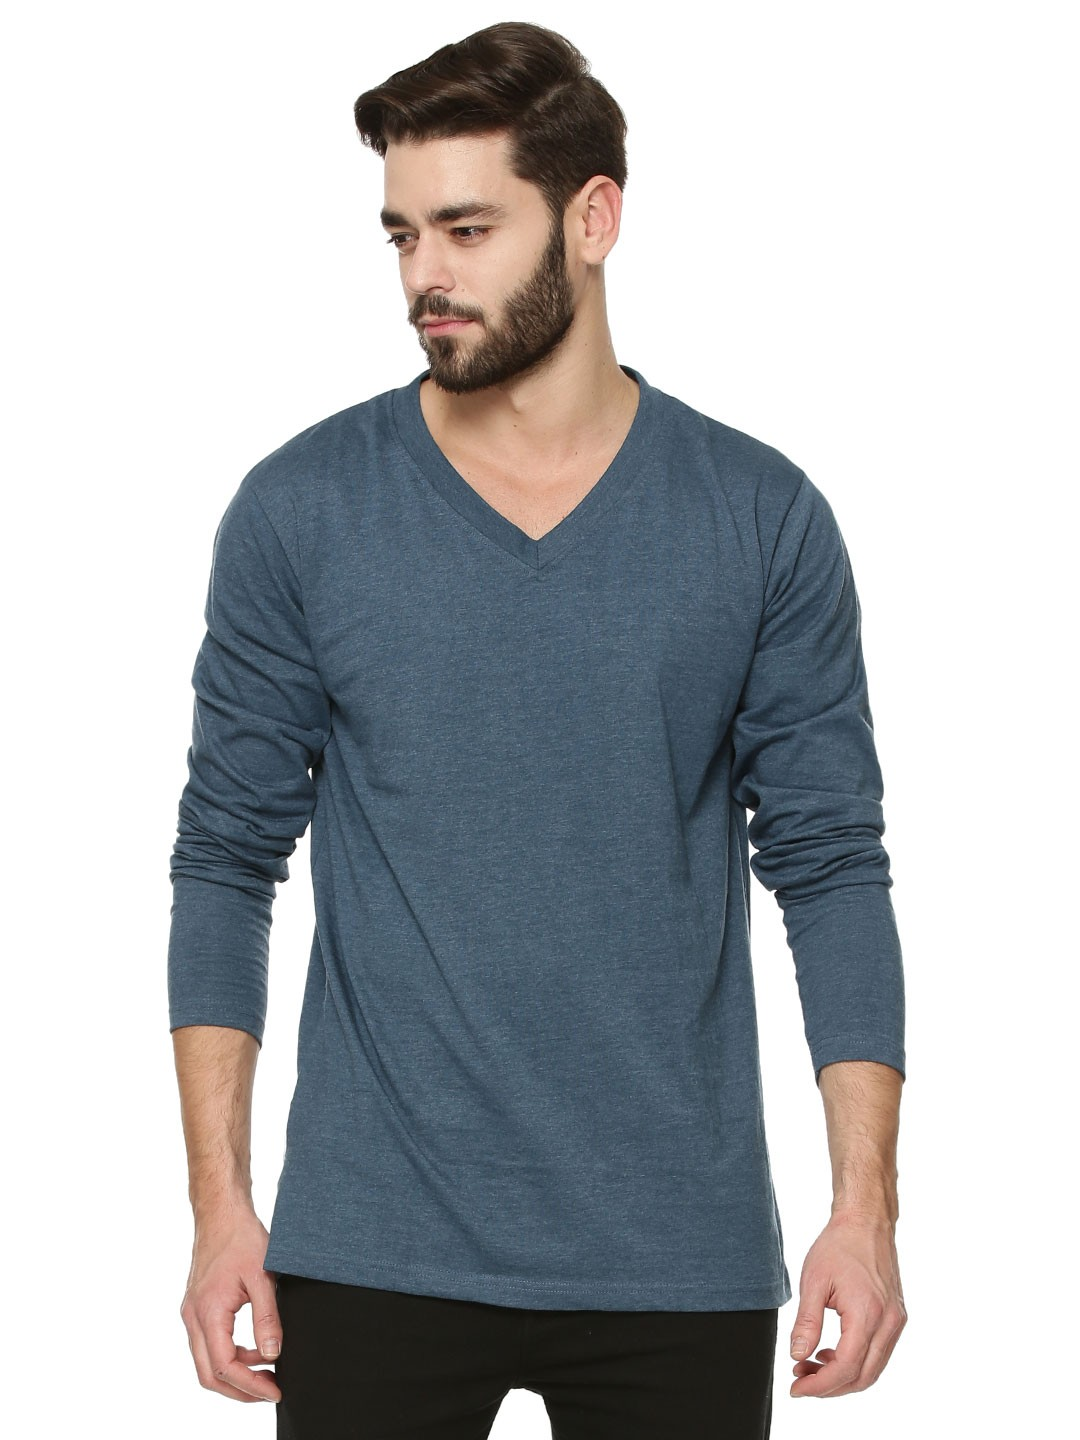 Online Shopping for Mens T shirts at Low Prices. T-shirts are among the most versatile pieces of clothing in men's fashion. A T-shirt can be worn while lounging around at home, working out, going out to a pub or to a date, or paired with pyjamas when sleeping. These clothing options can be paired with trousers, jeans, dressy shorts or sports shorts for a variety of different activities and.